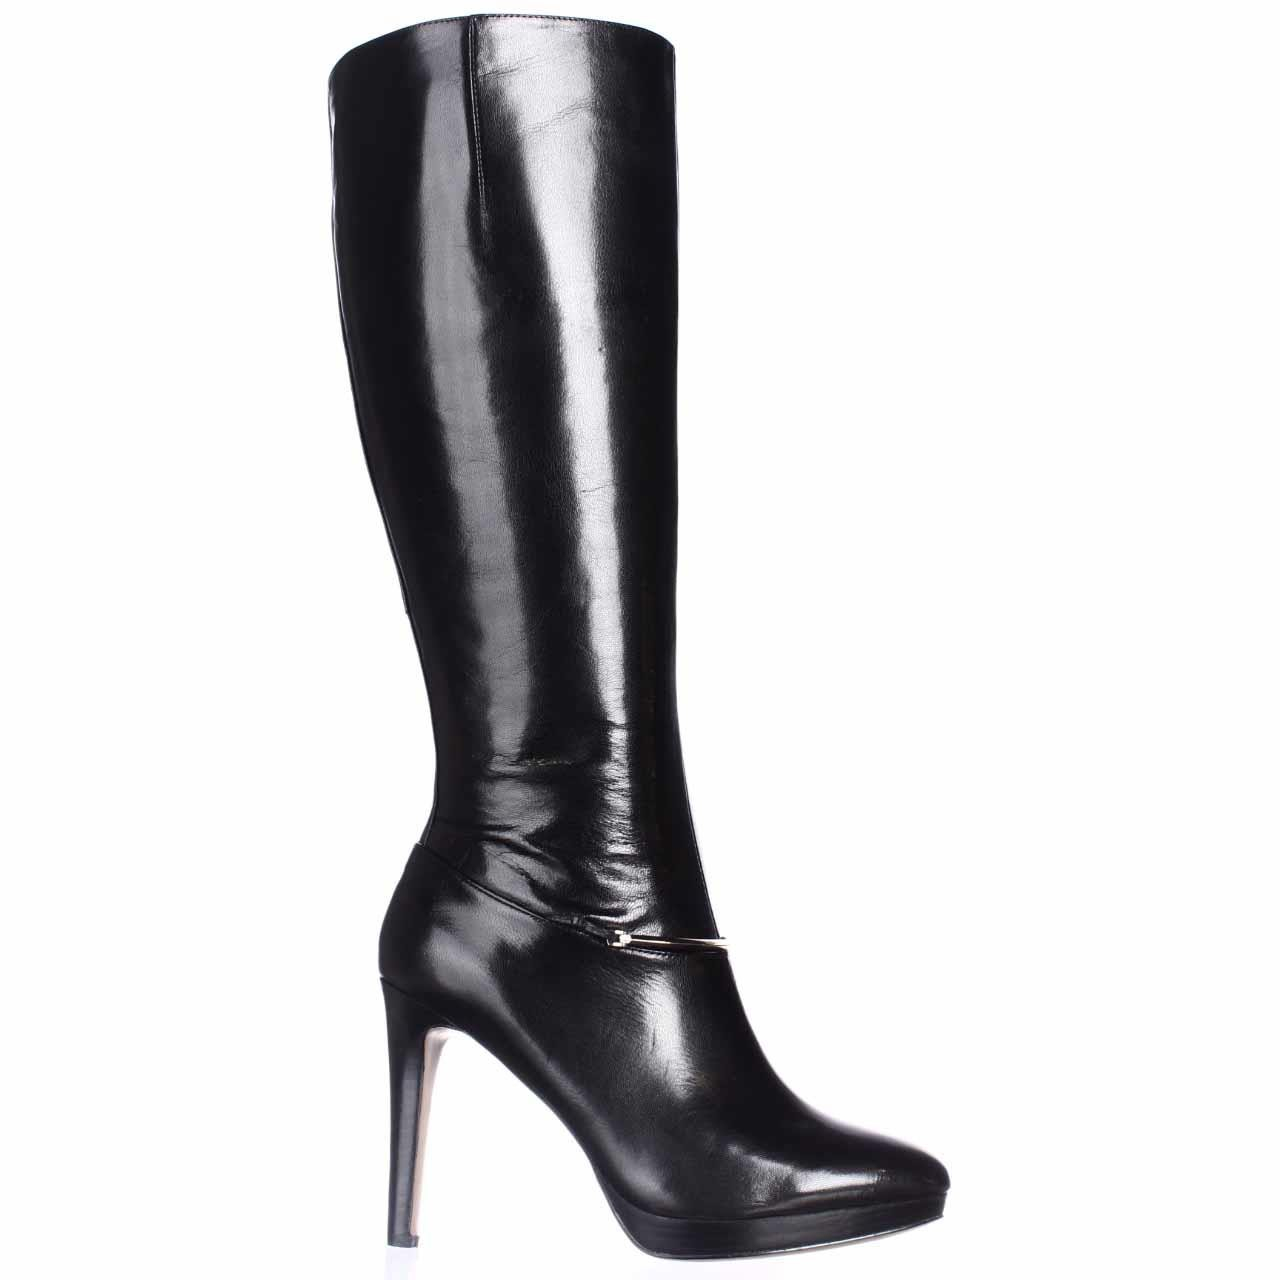 Nine west Pearson Wide-calf Knee High Boots in Black | Lyst